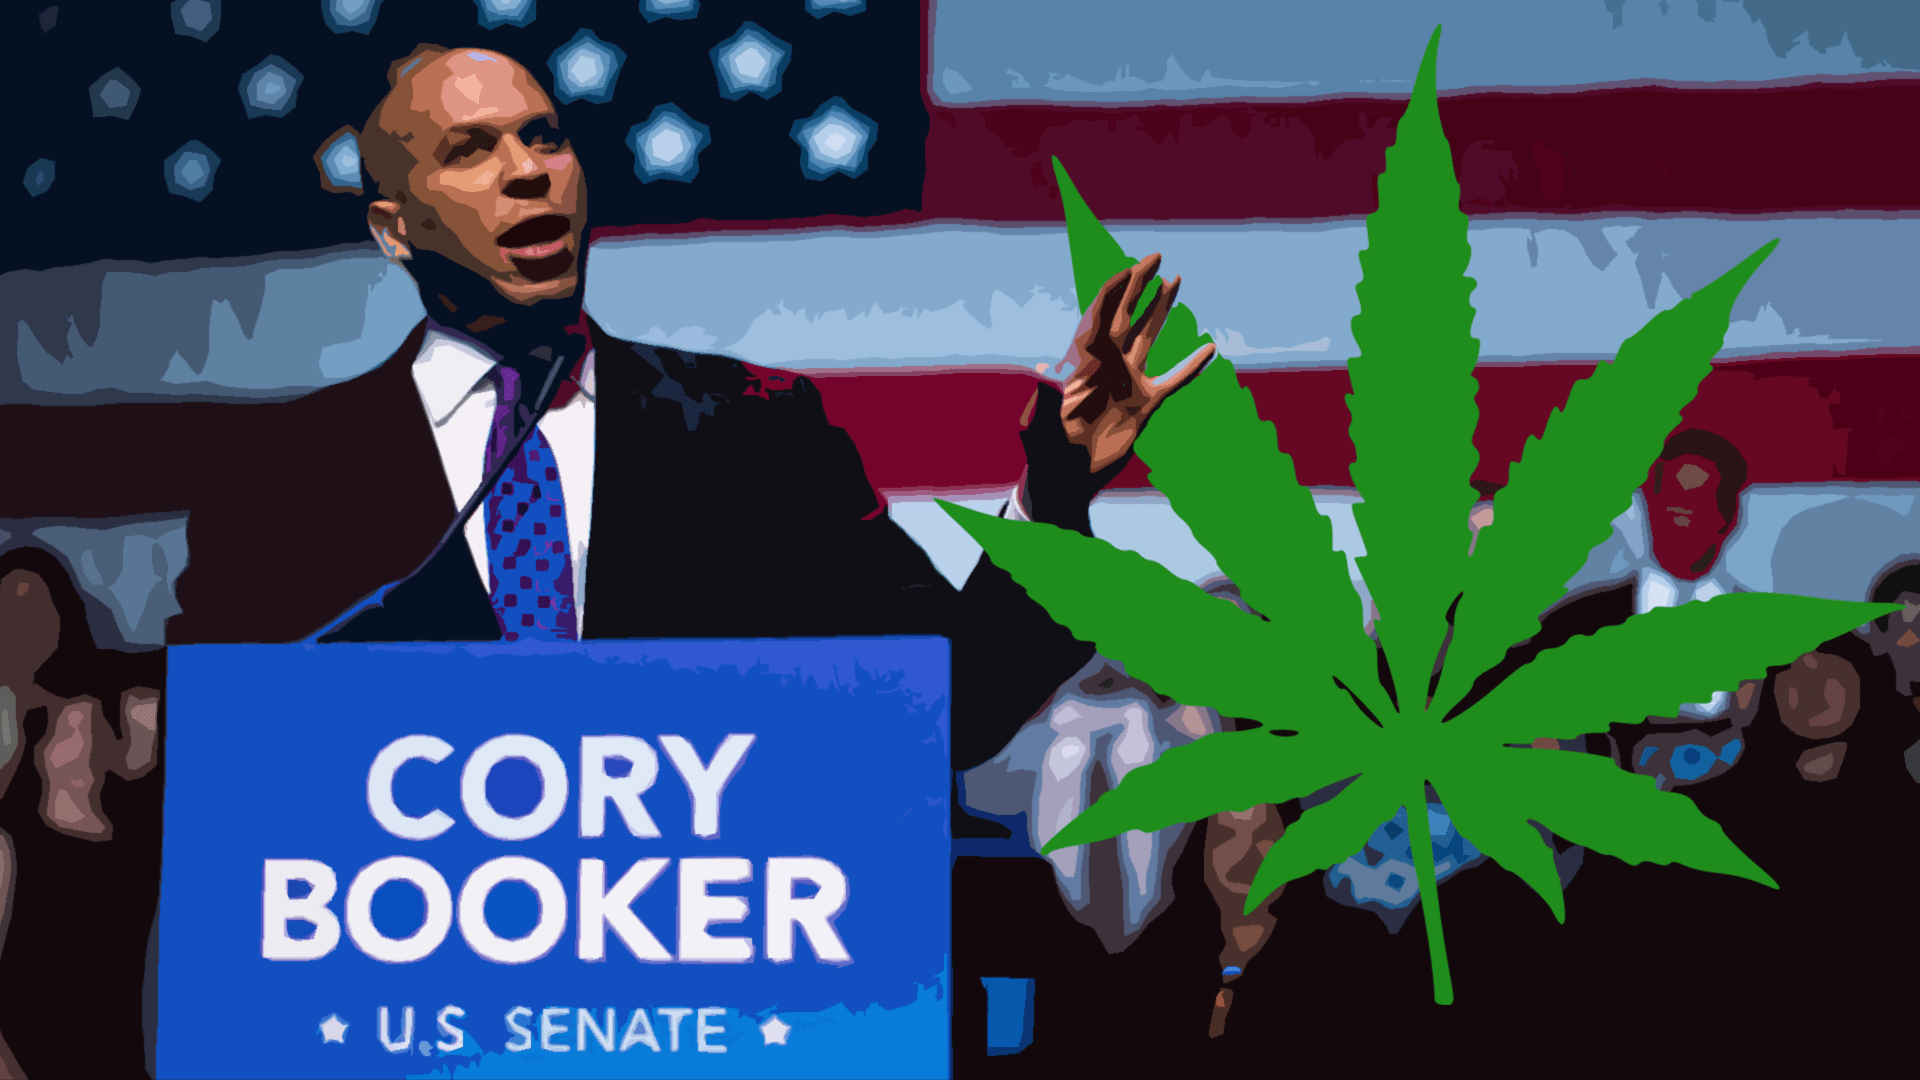 Cory Booker Marijuana Bill Deserves Progressive Support